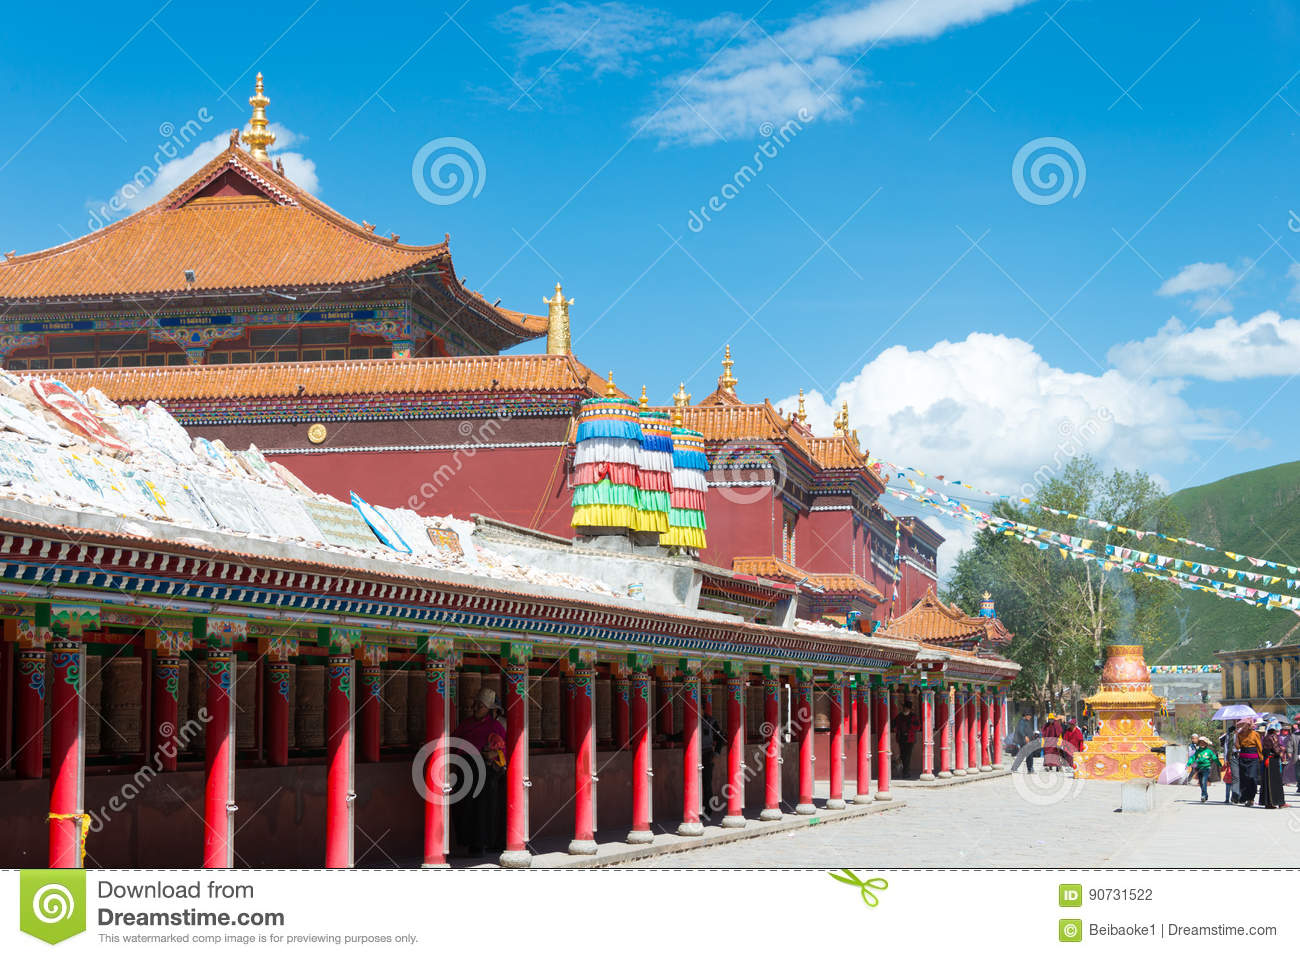 YUSHU(JYEKUNDO), CHINA - Jul 12 2014: Mani Temple(Mani Shicheng). a famous landmark in the Tibetan city of Yushu, Qinghai, China.